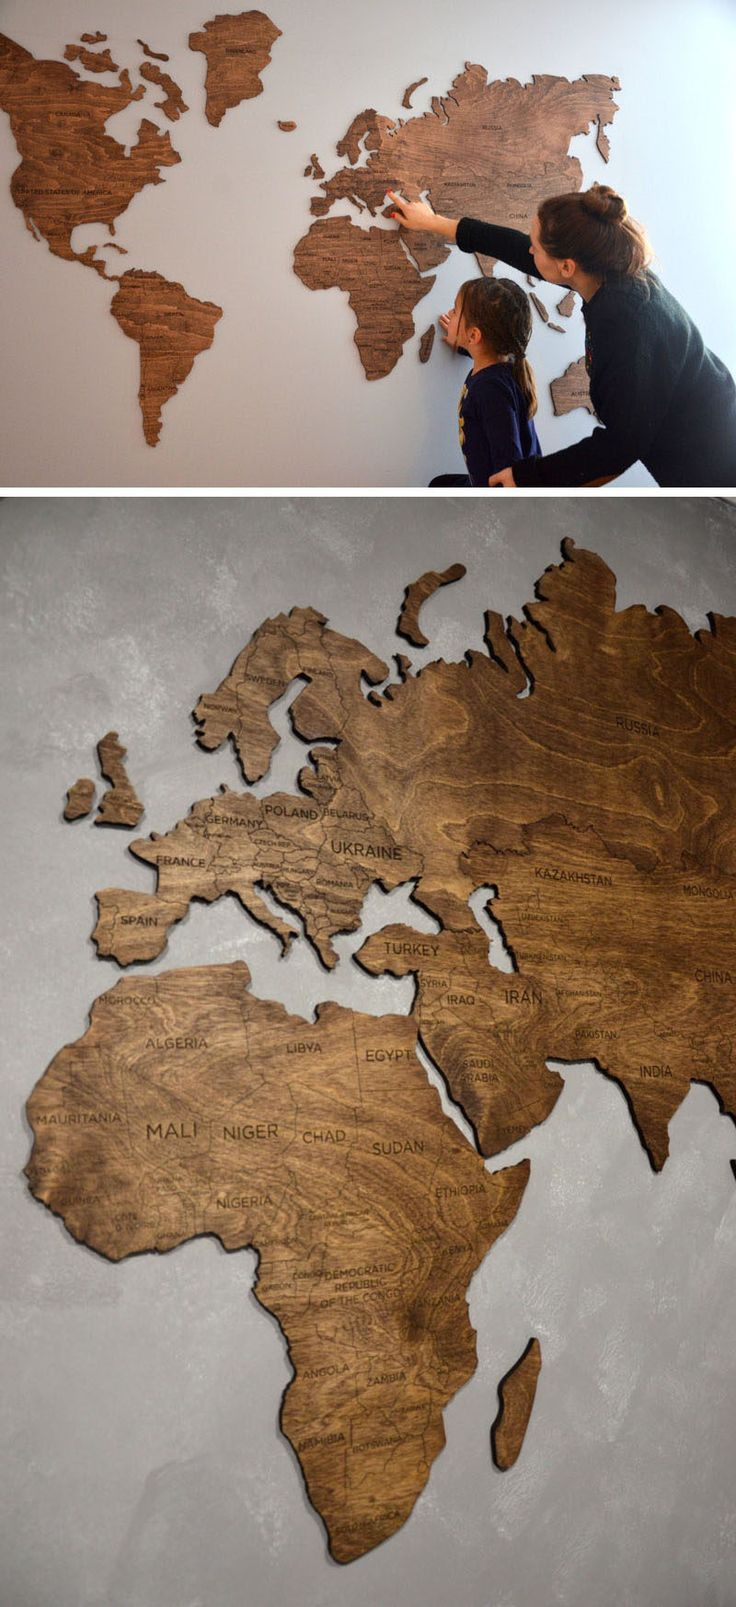 10 world map designs to decorate a plain wall - Wood Designs For Walls